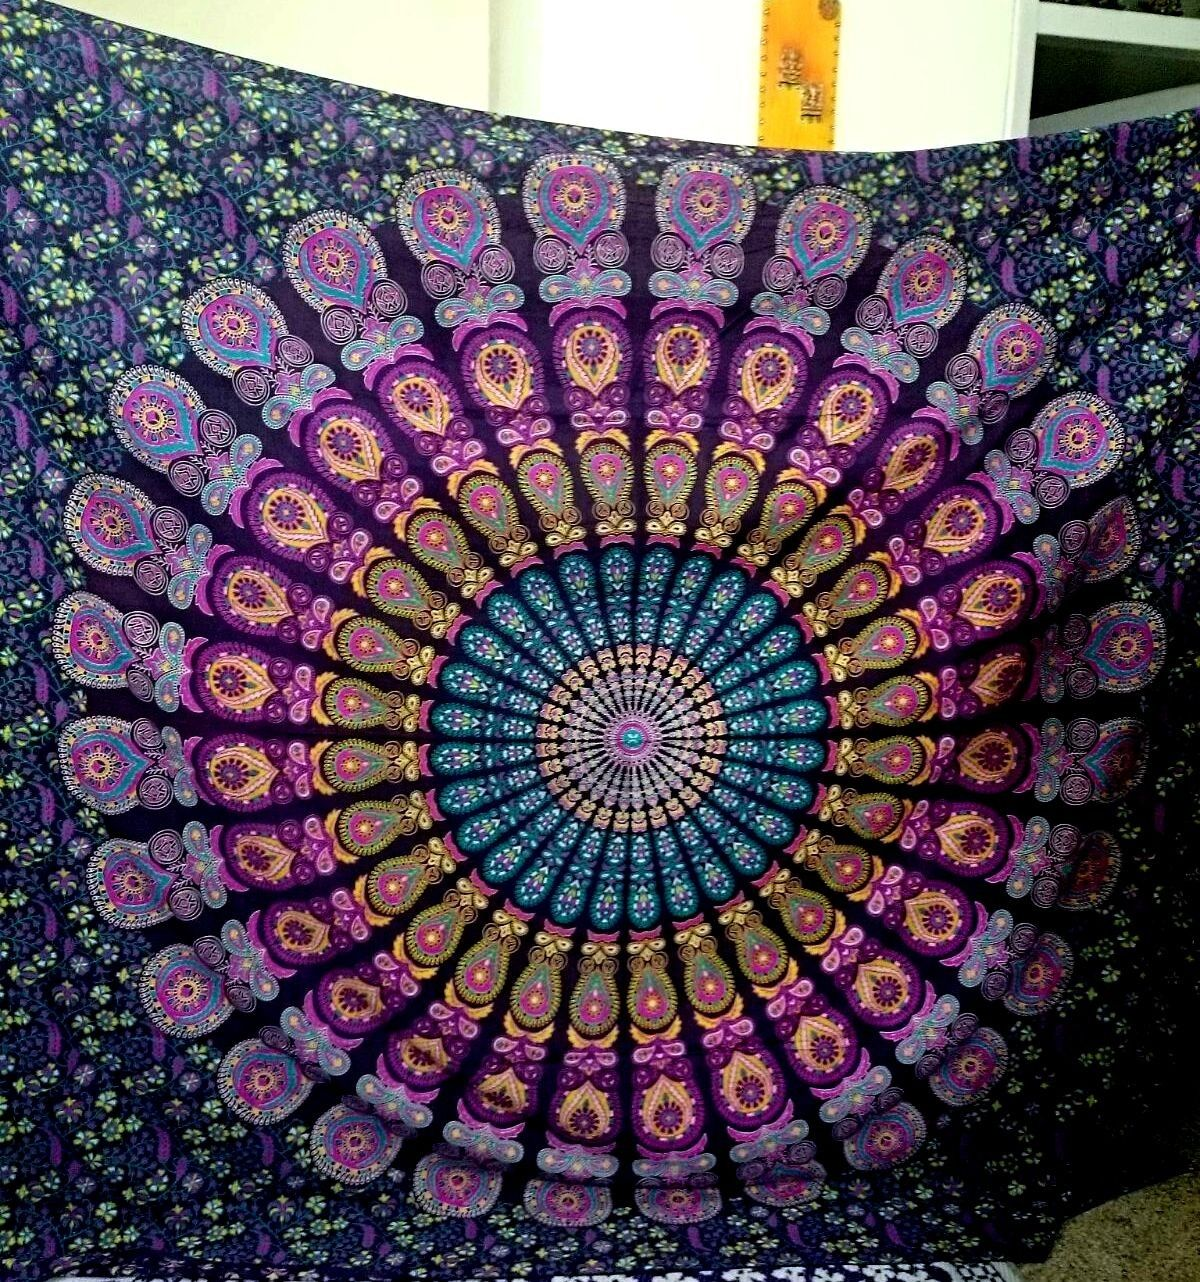 Large Tapestry Wall Hangings paradise large tapestry | tapestry wall hanging, mandala tapestry